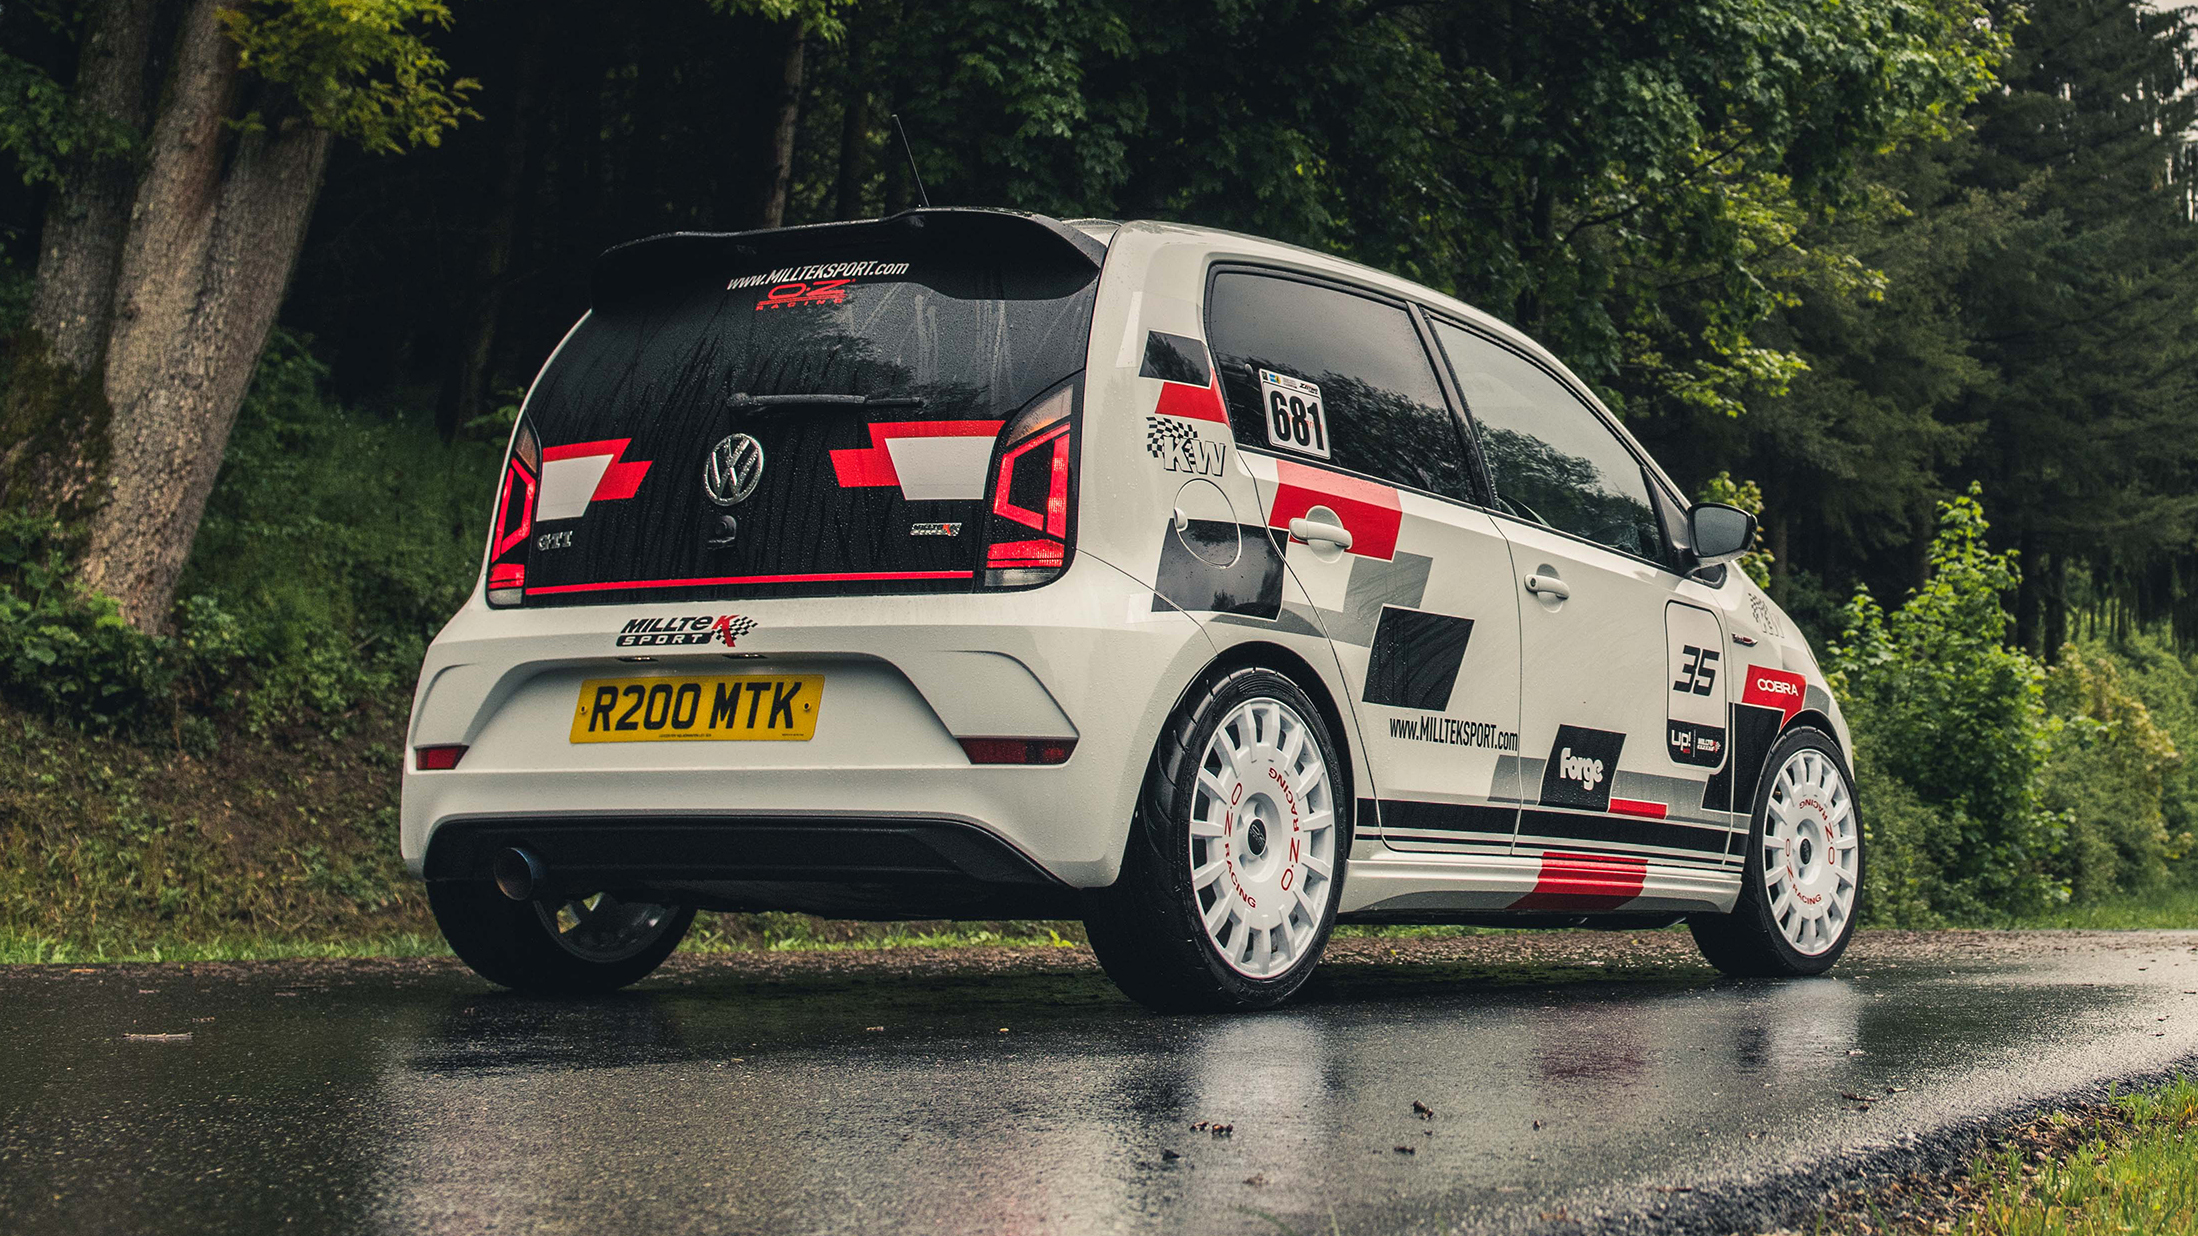 Vw Up Gti >> Vw Up Gti By Milltek Review Tiny Tuned Terror Tested Top Gear